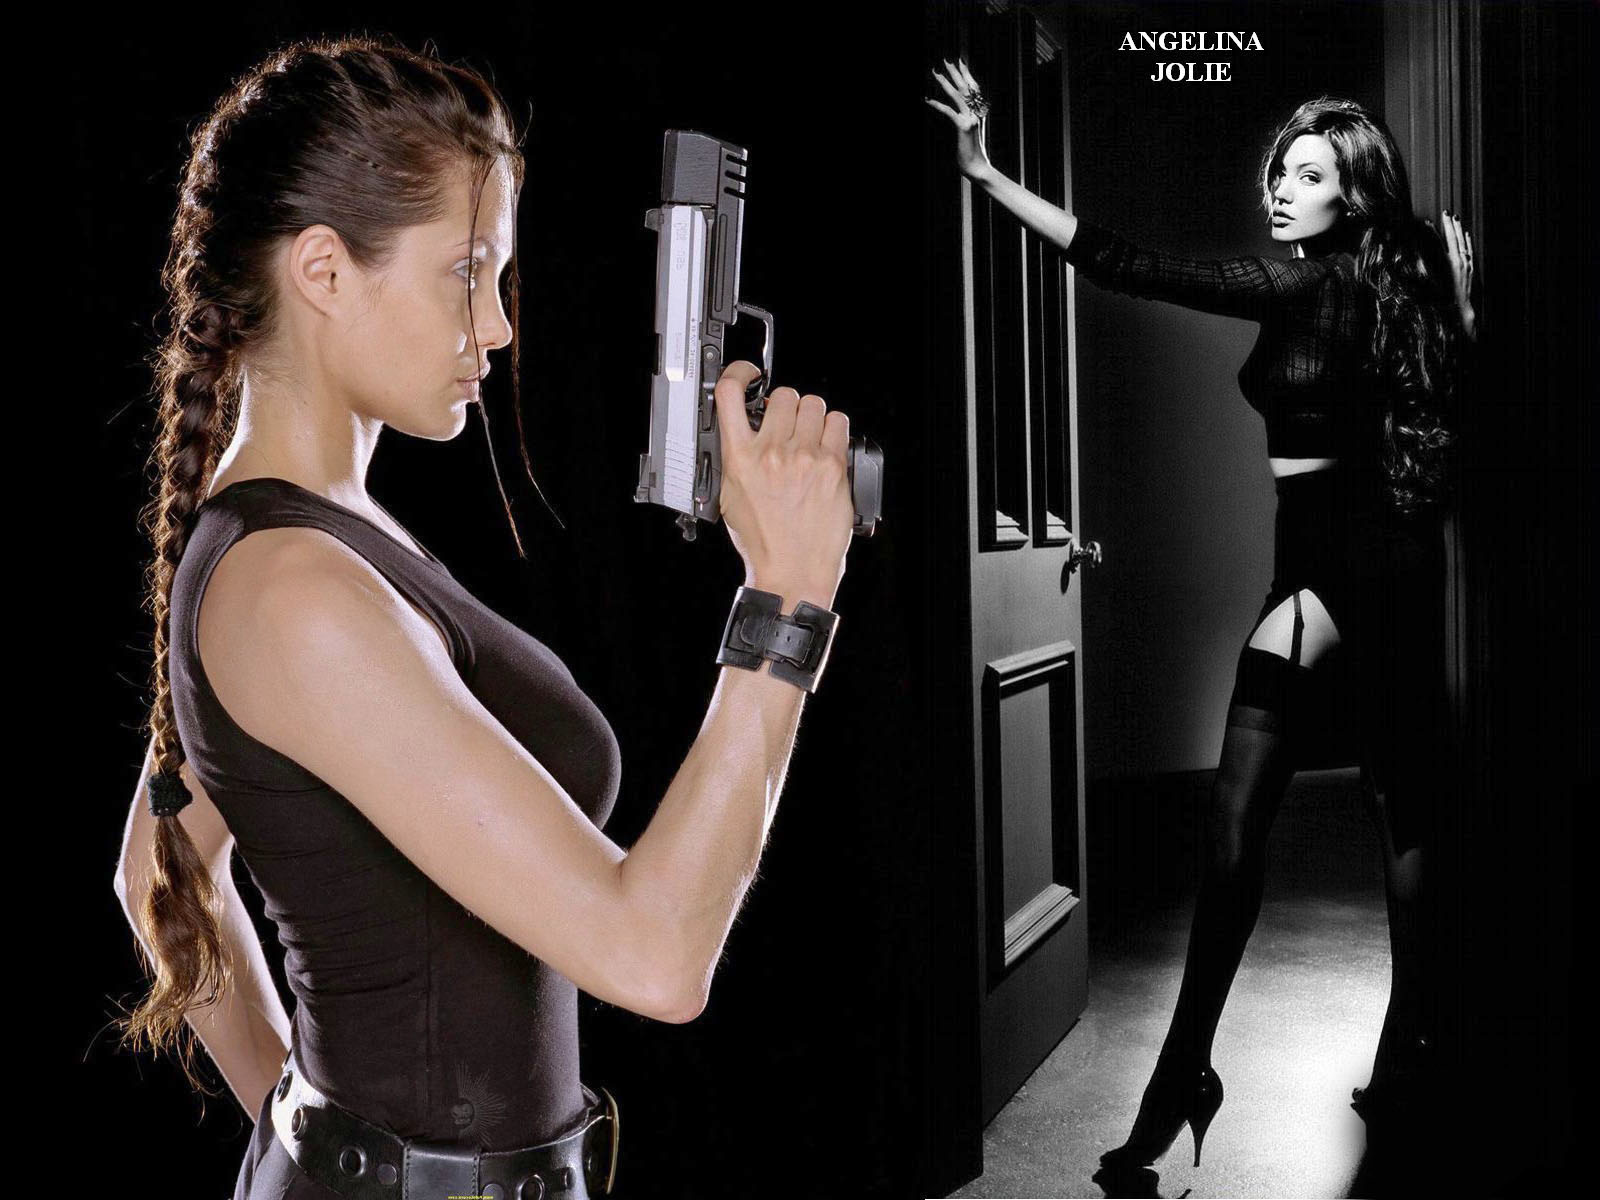 Angelina Jolie Action Film Star